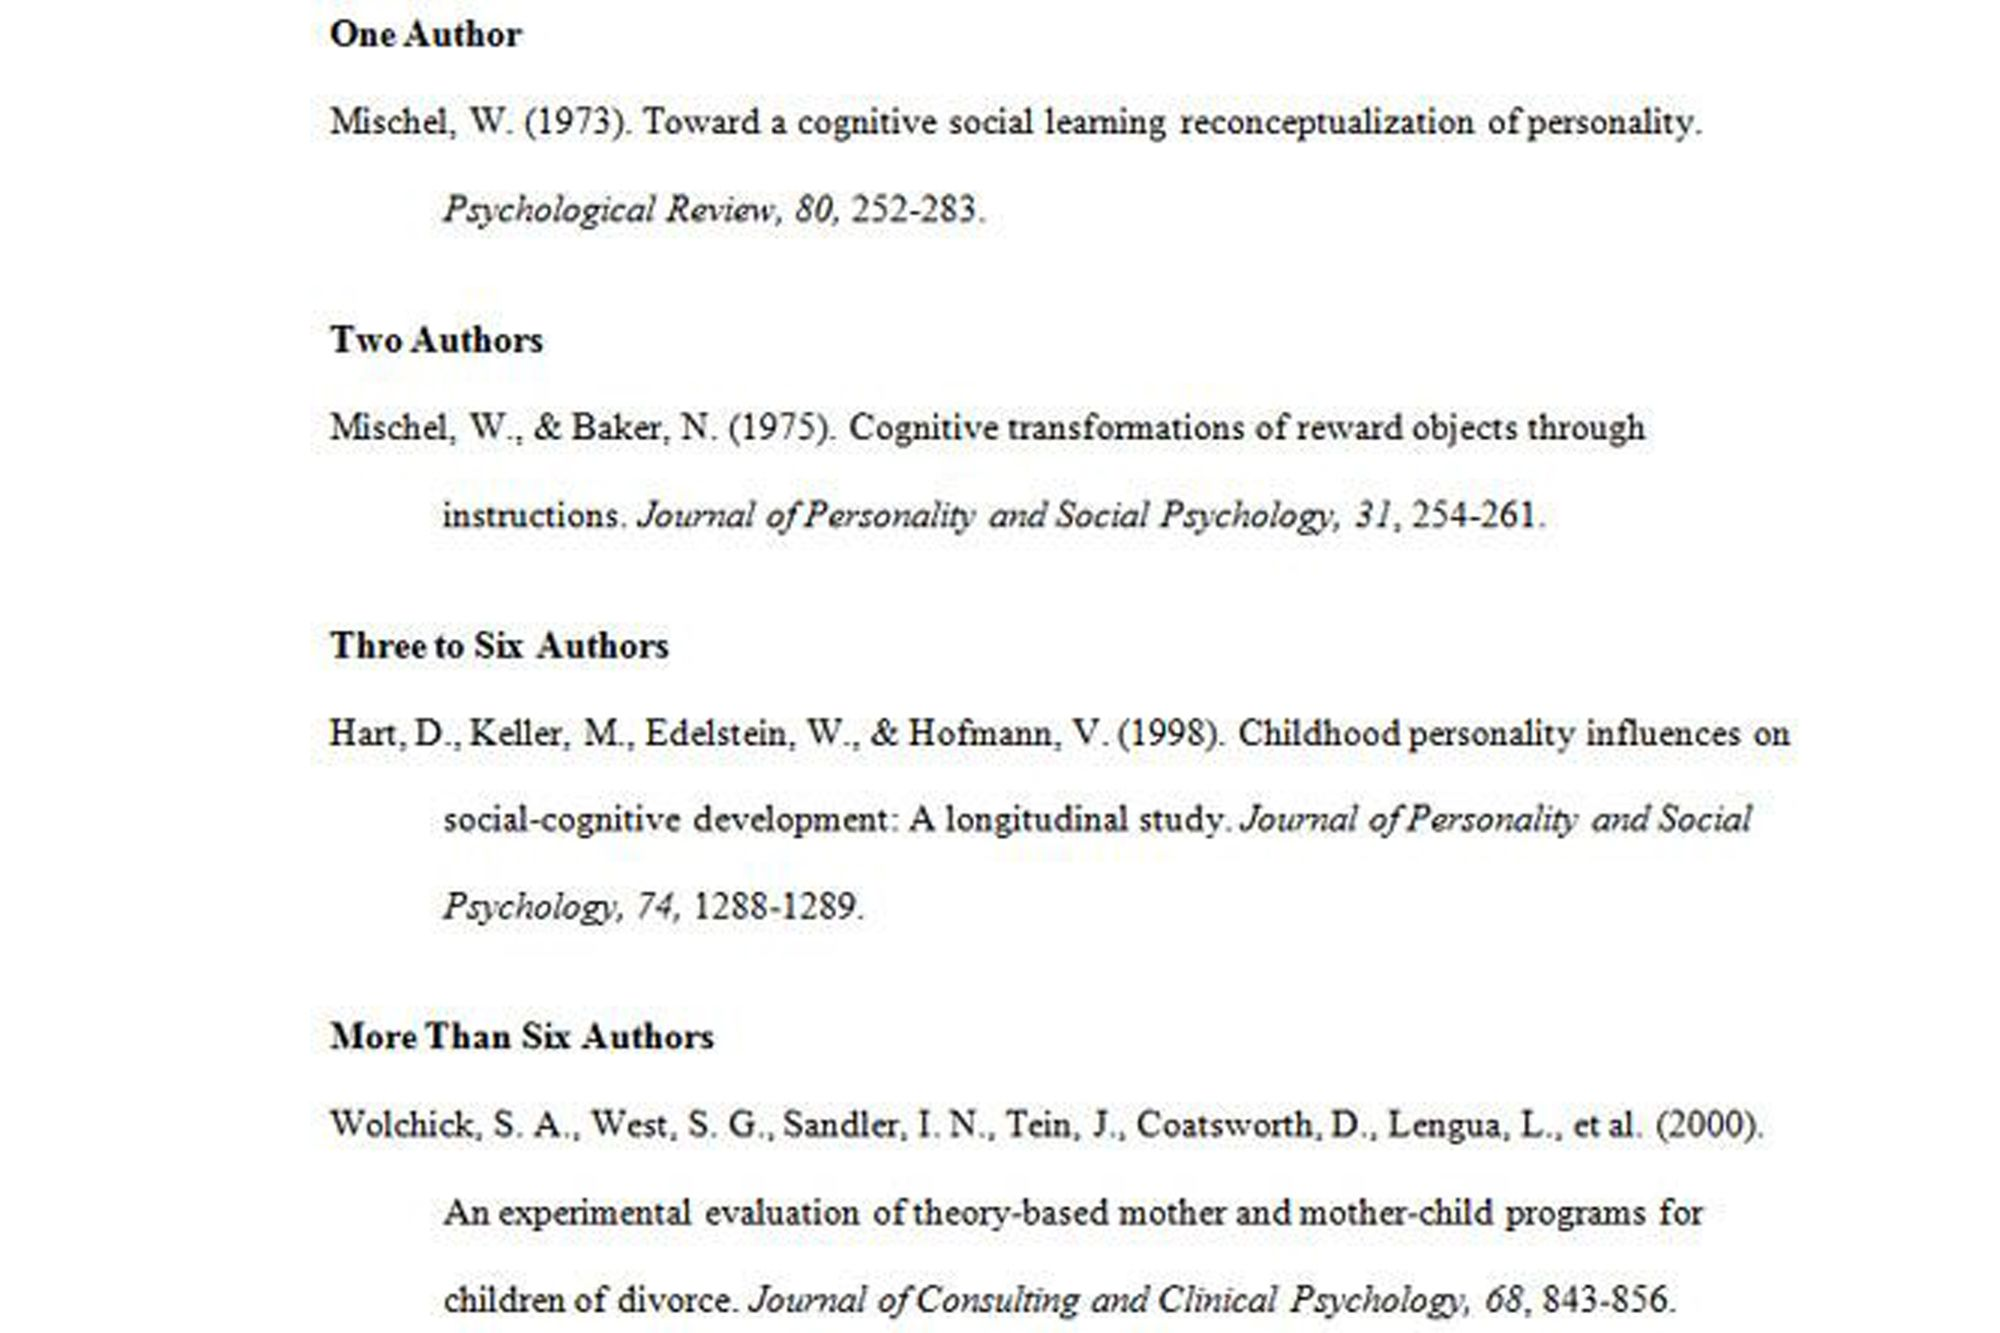 an examples of authors in apa format